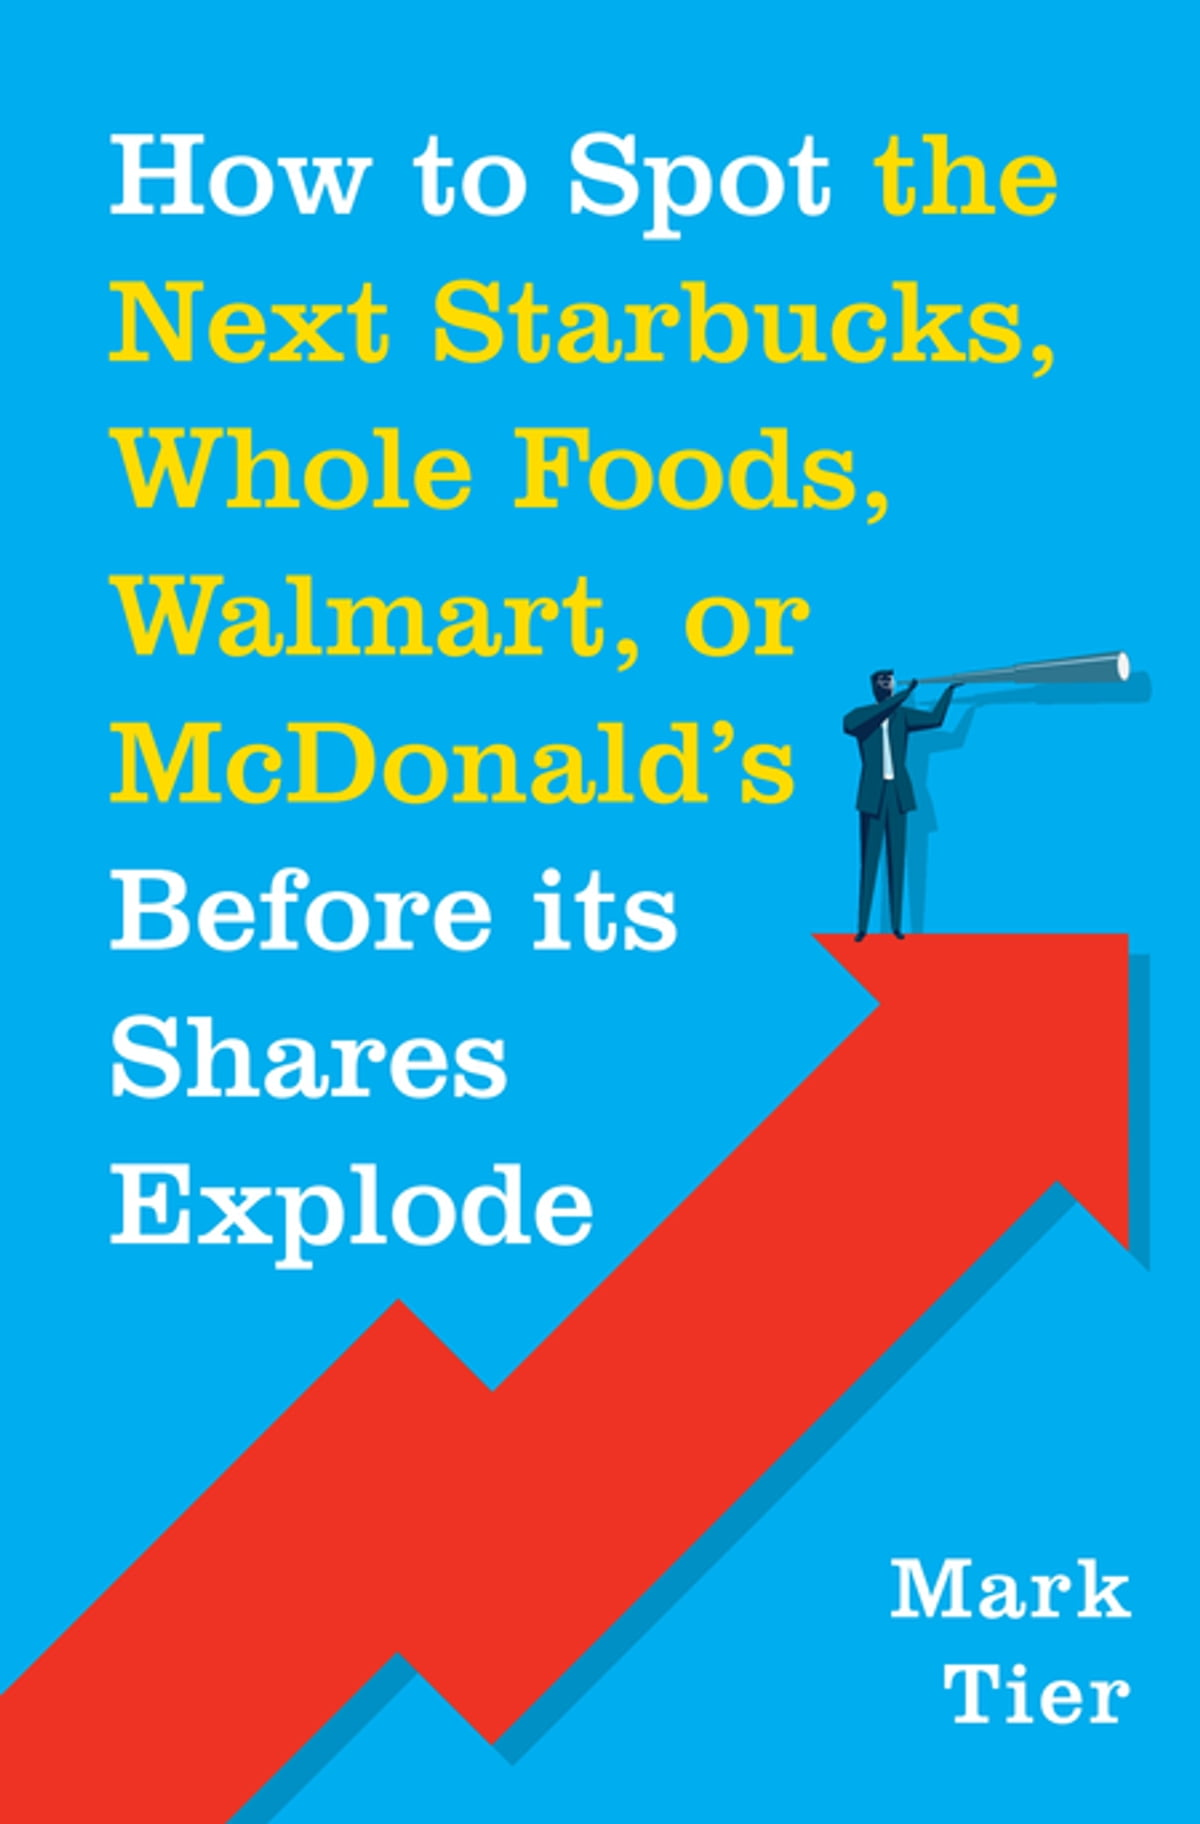 How to spot the next starbucks whole foods walmart or mcdonald store